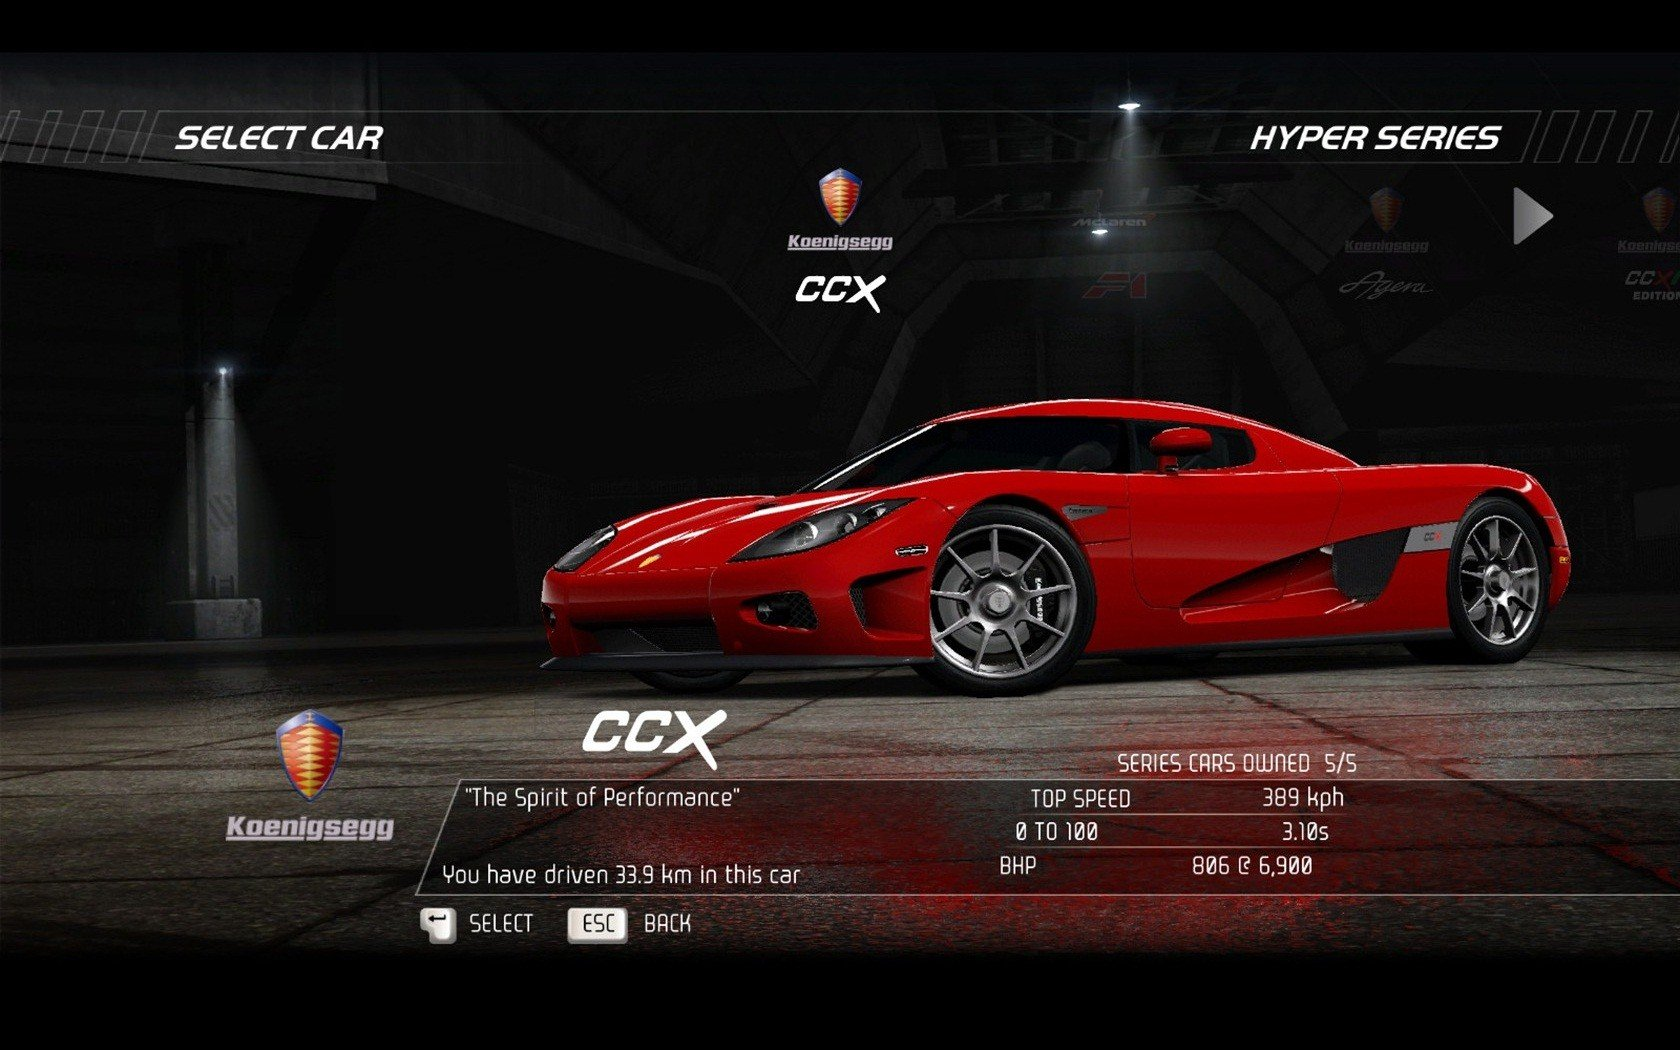 Ccx Car Wallpaper Video Games Cars Vehicles Koenigsegg Ccx Need For Speed